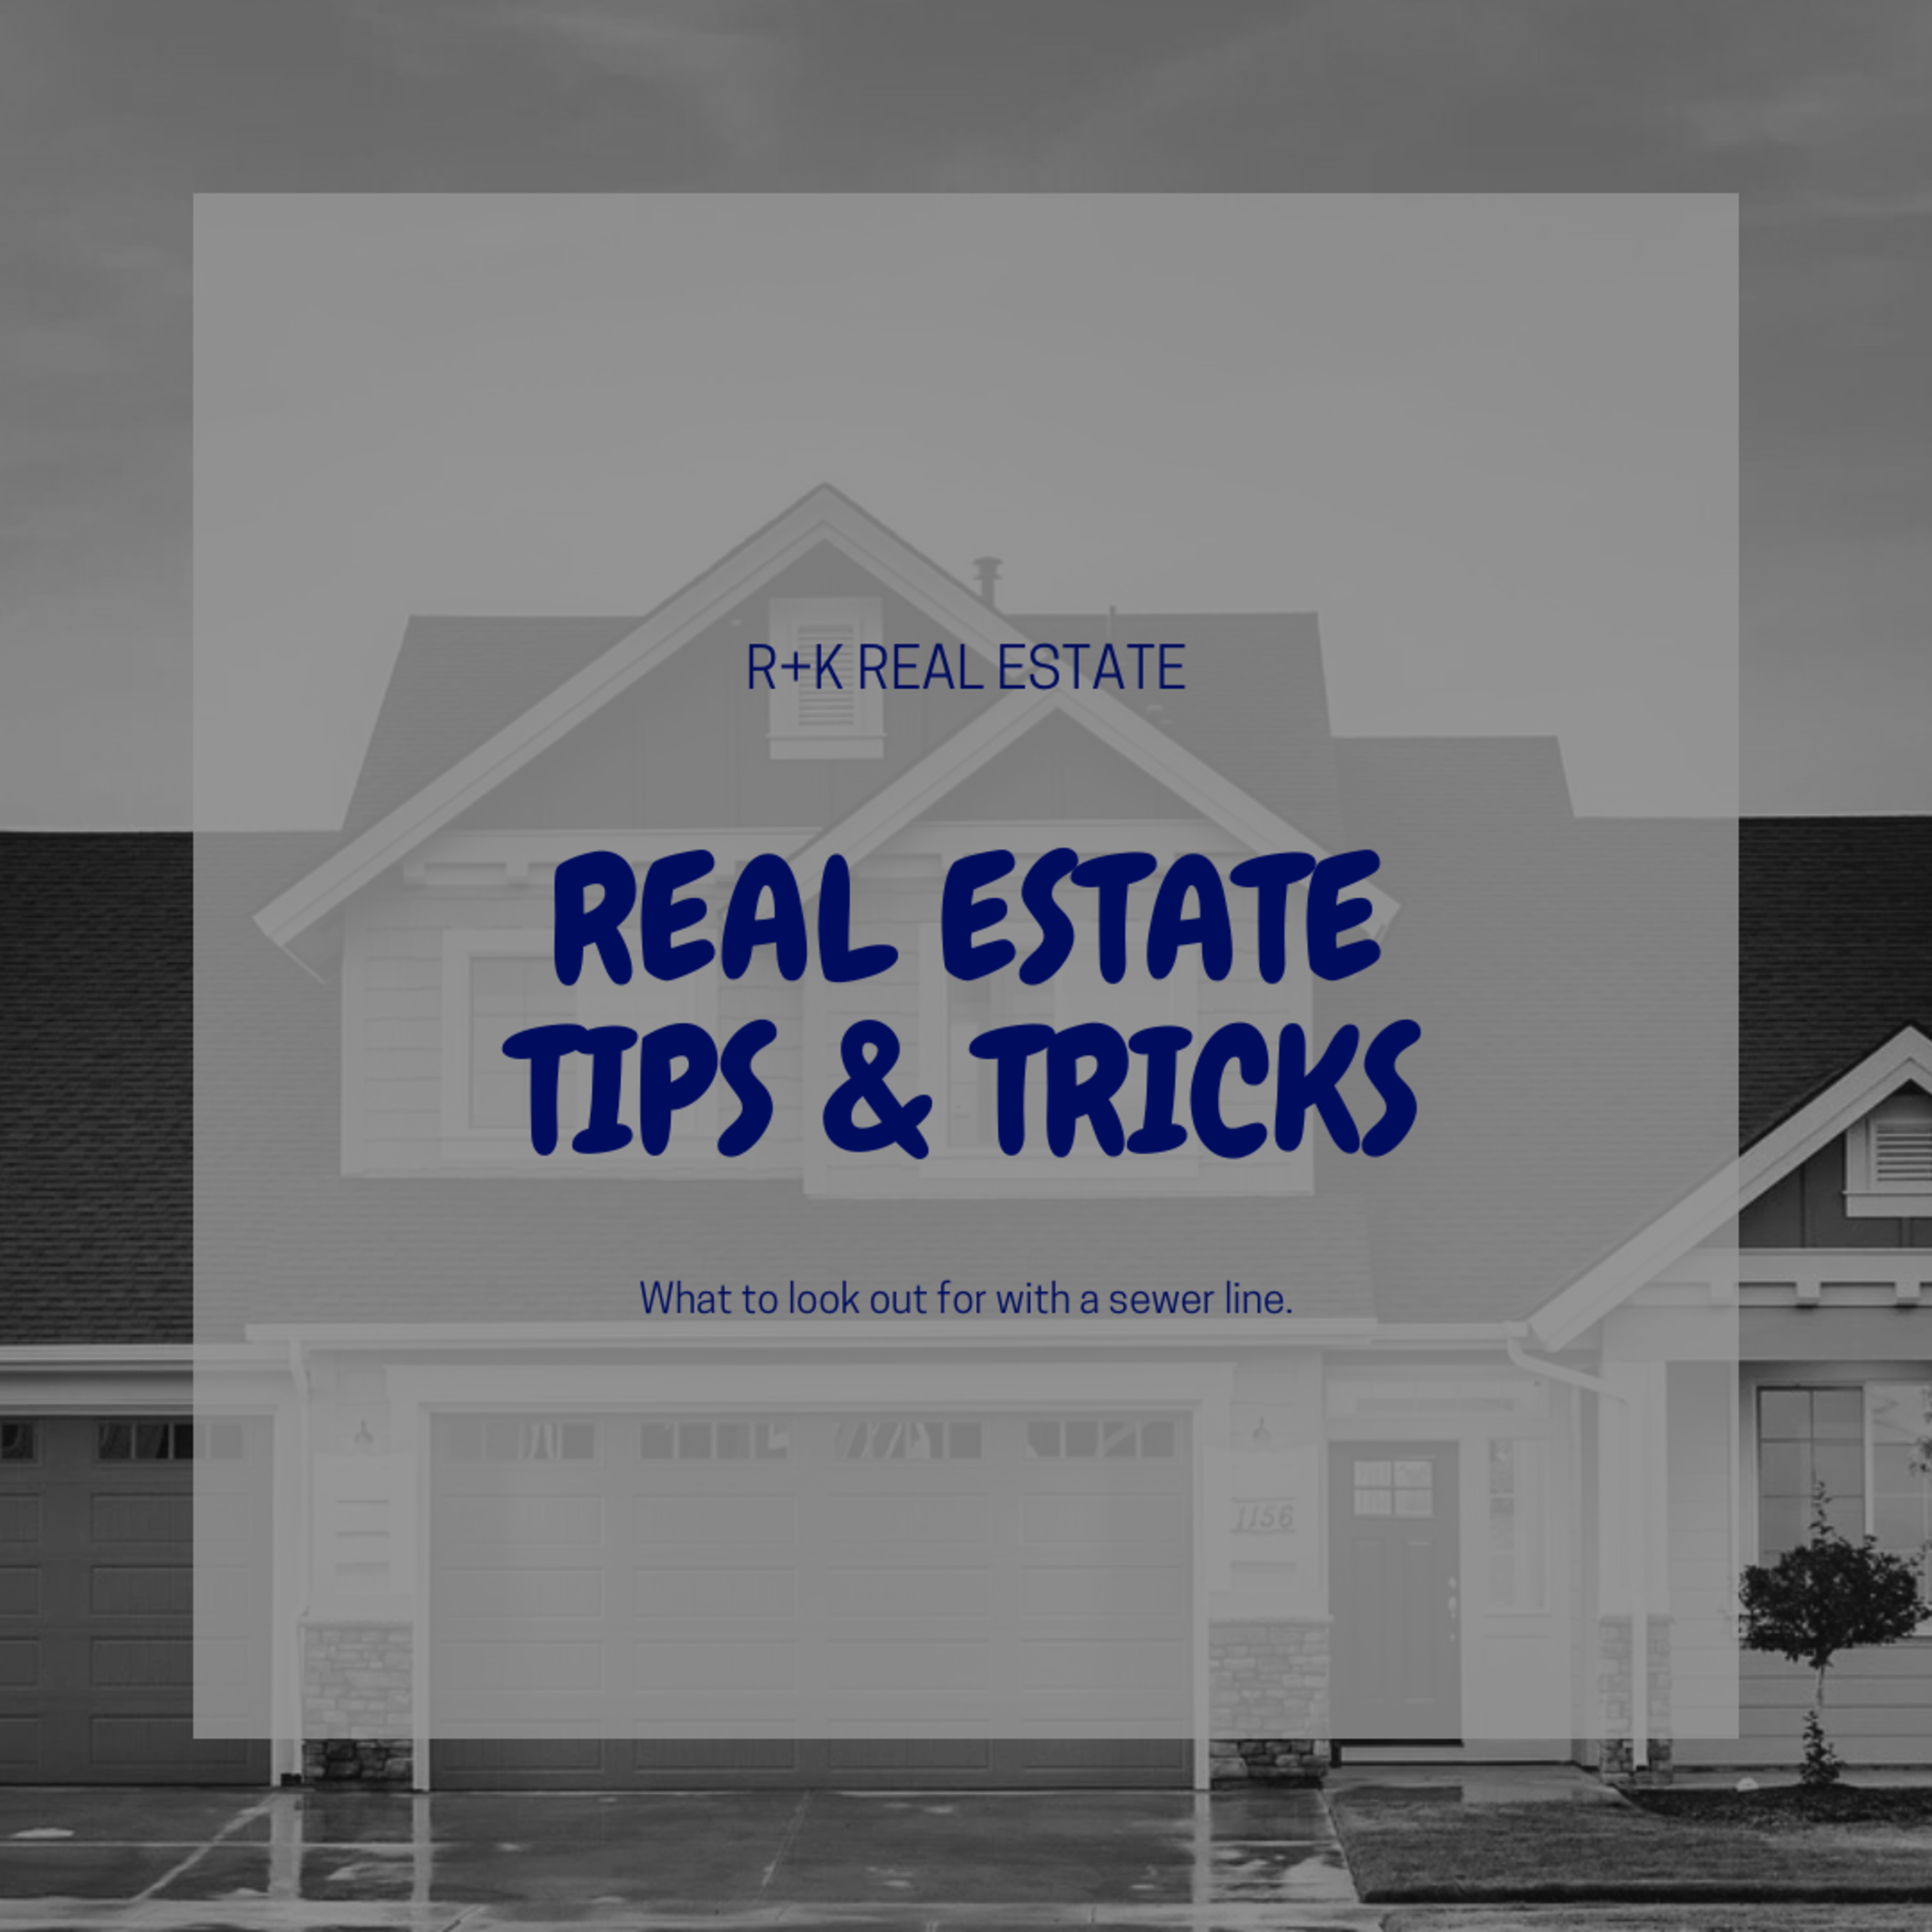 Real Estate Tips & Tricks: What to Look Out for in a Sewer Line